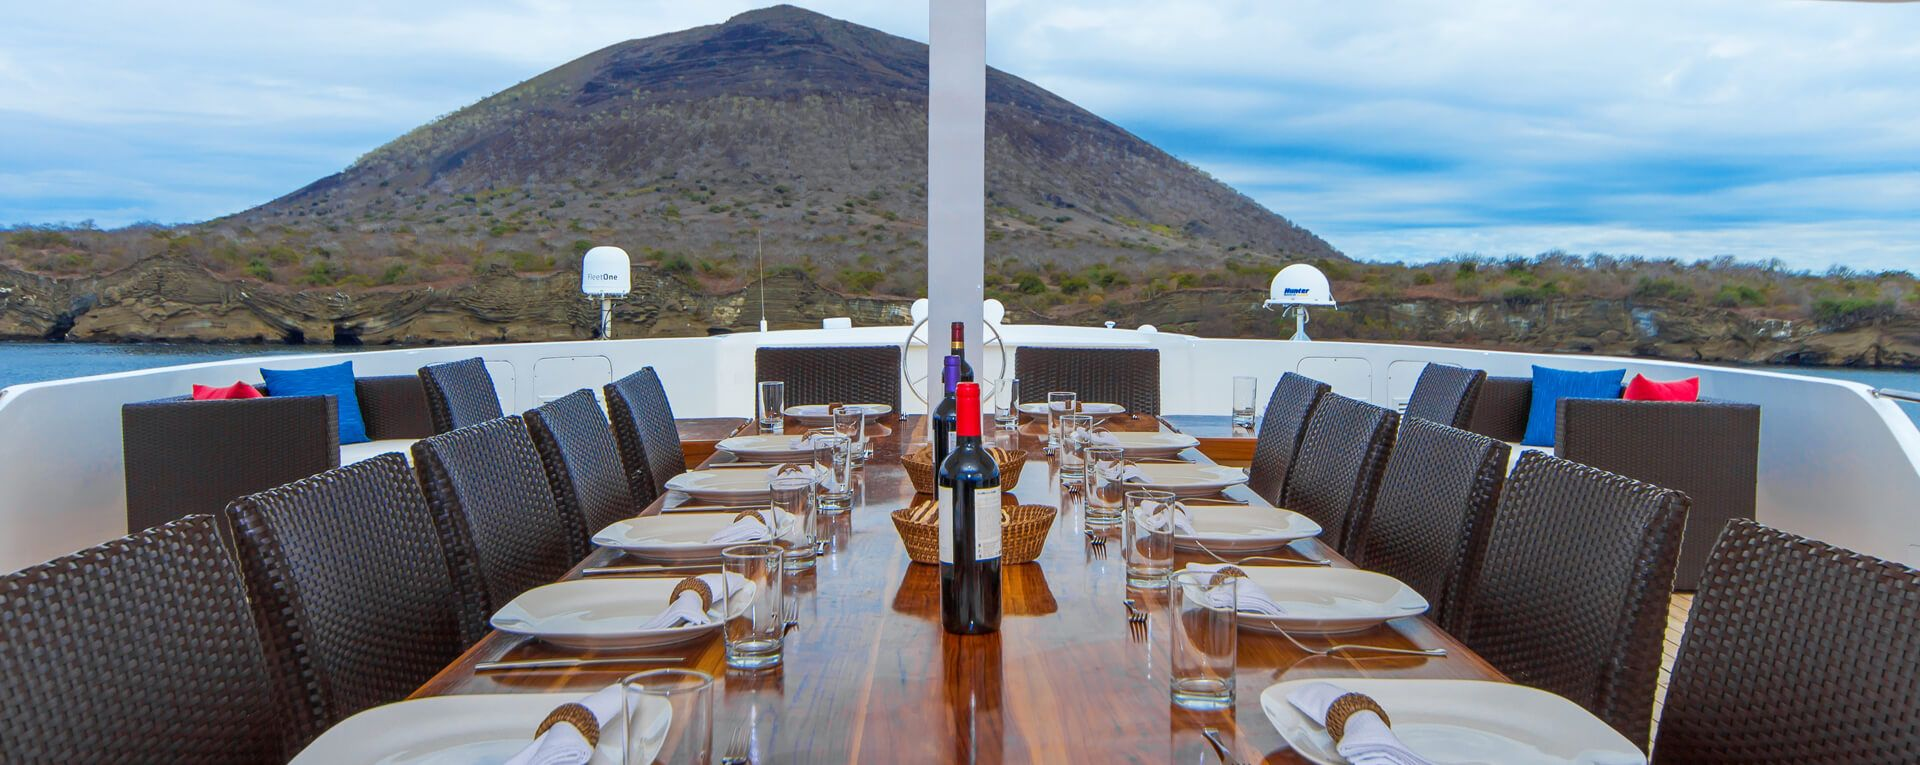 Royal Galapagos Cruises